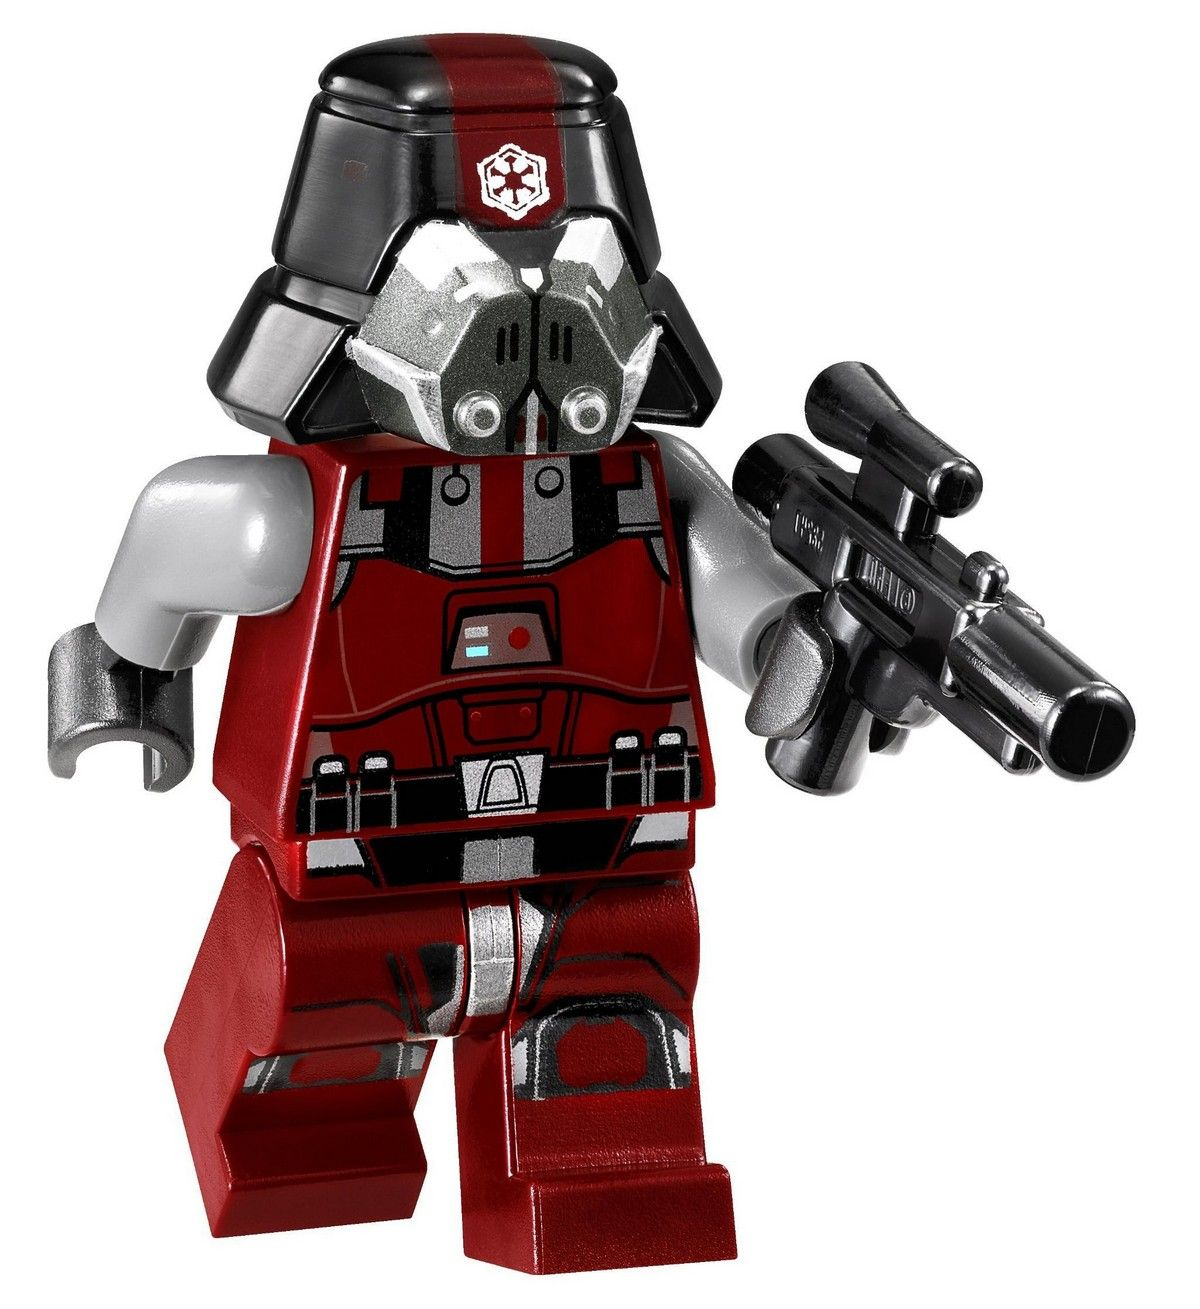 lego 75001 republic troopers vs sith trooper i brick city. Black Bedroom Furniture Sets. Home Design Ideas